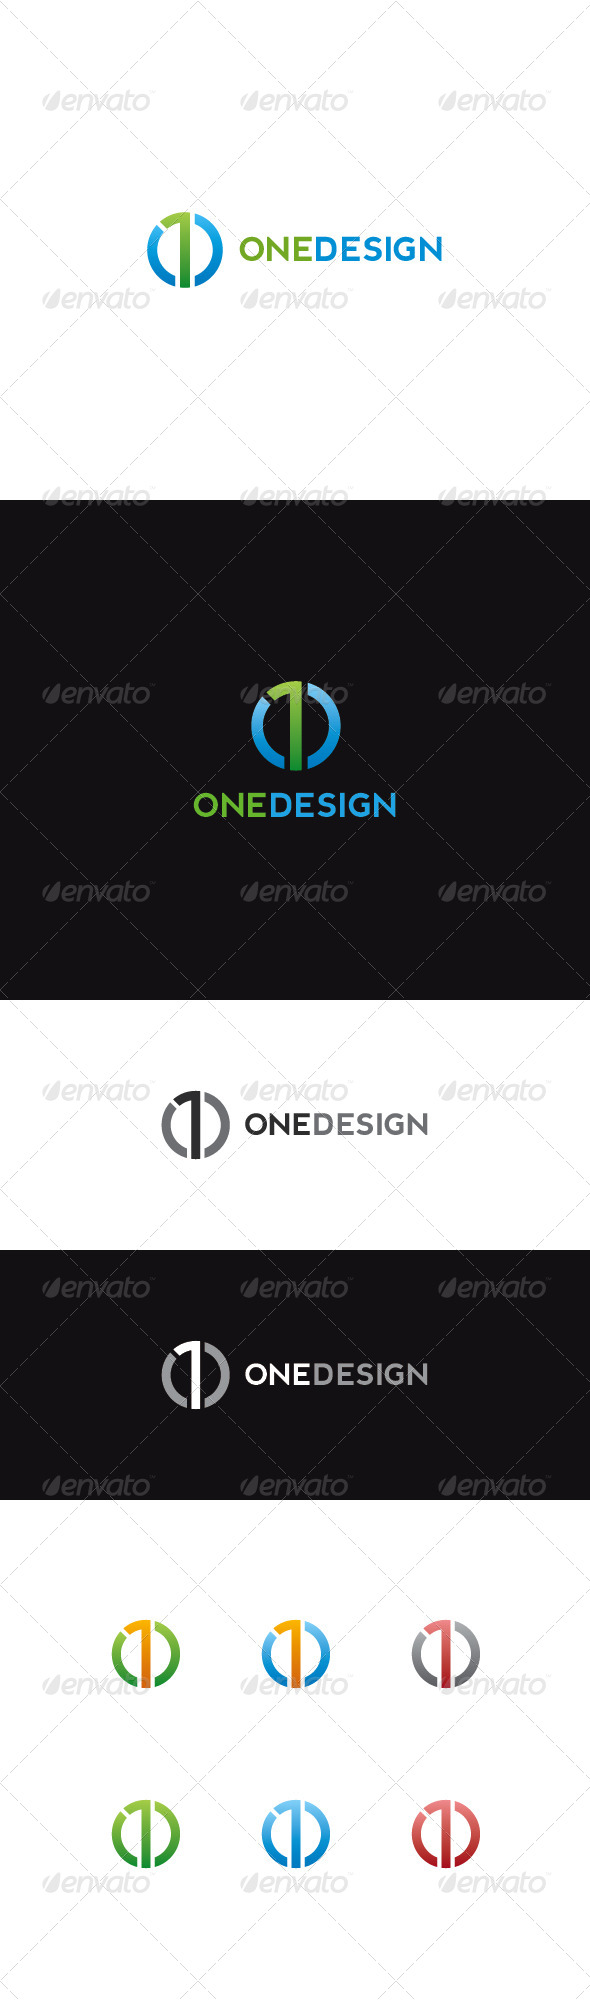 Number One Logo   Onedesign